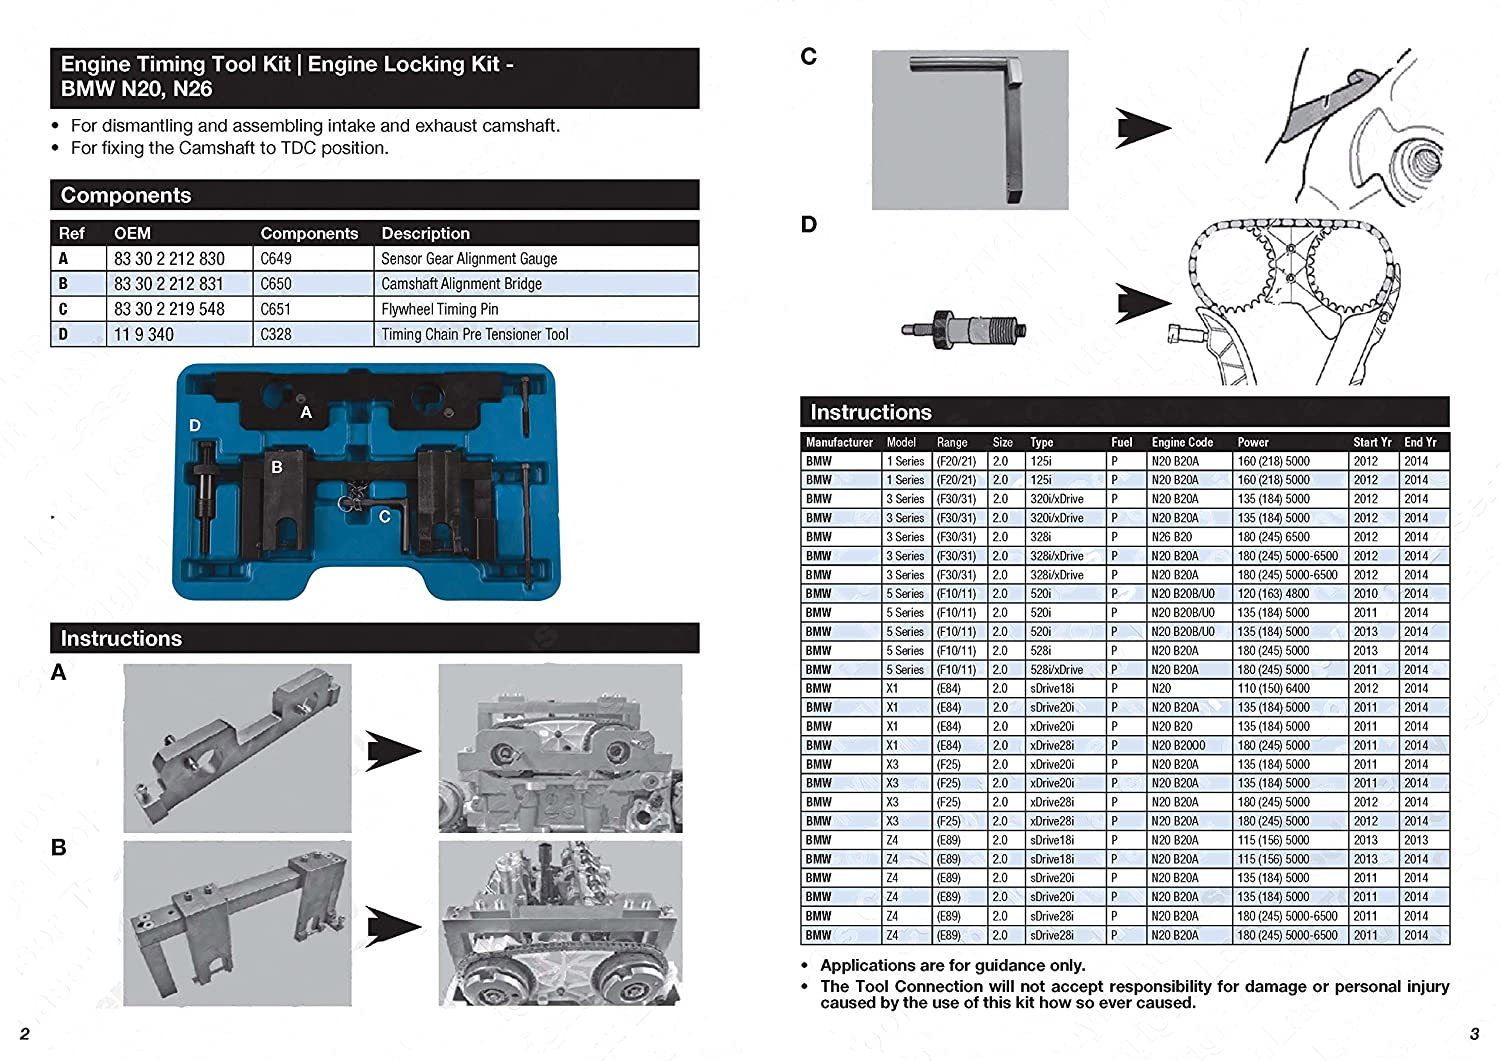 2007 Jeep Liberty Wiring Diagram from images-na.ssl-images-amazon.com